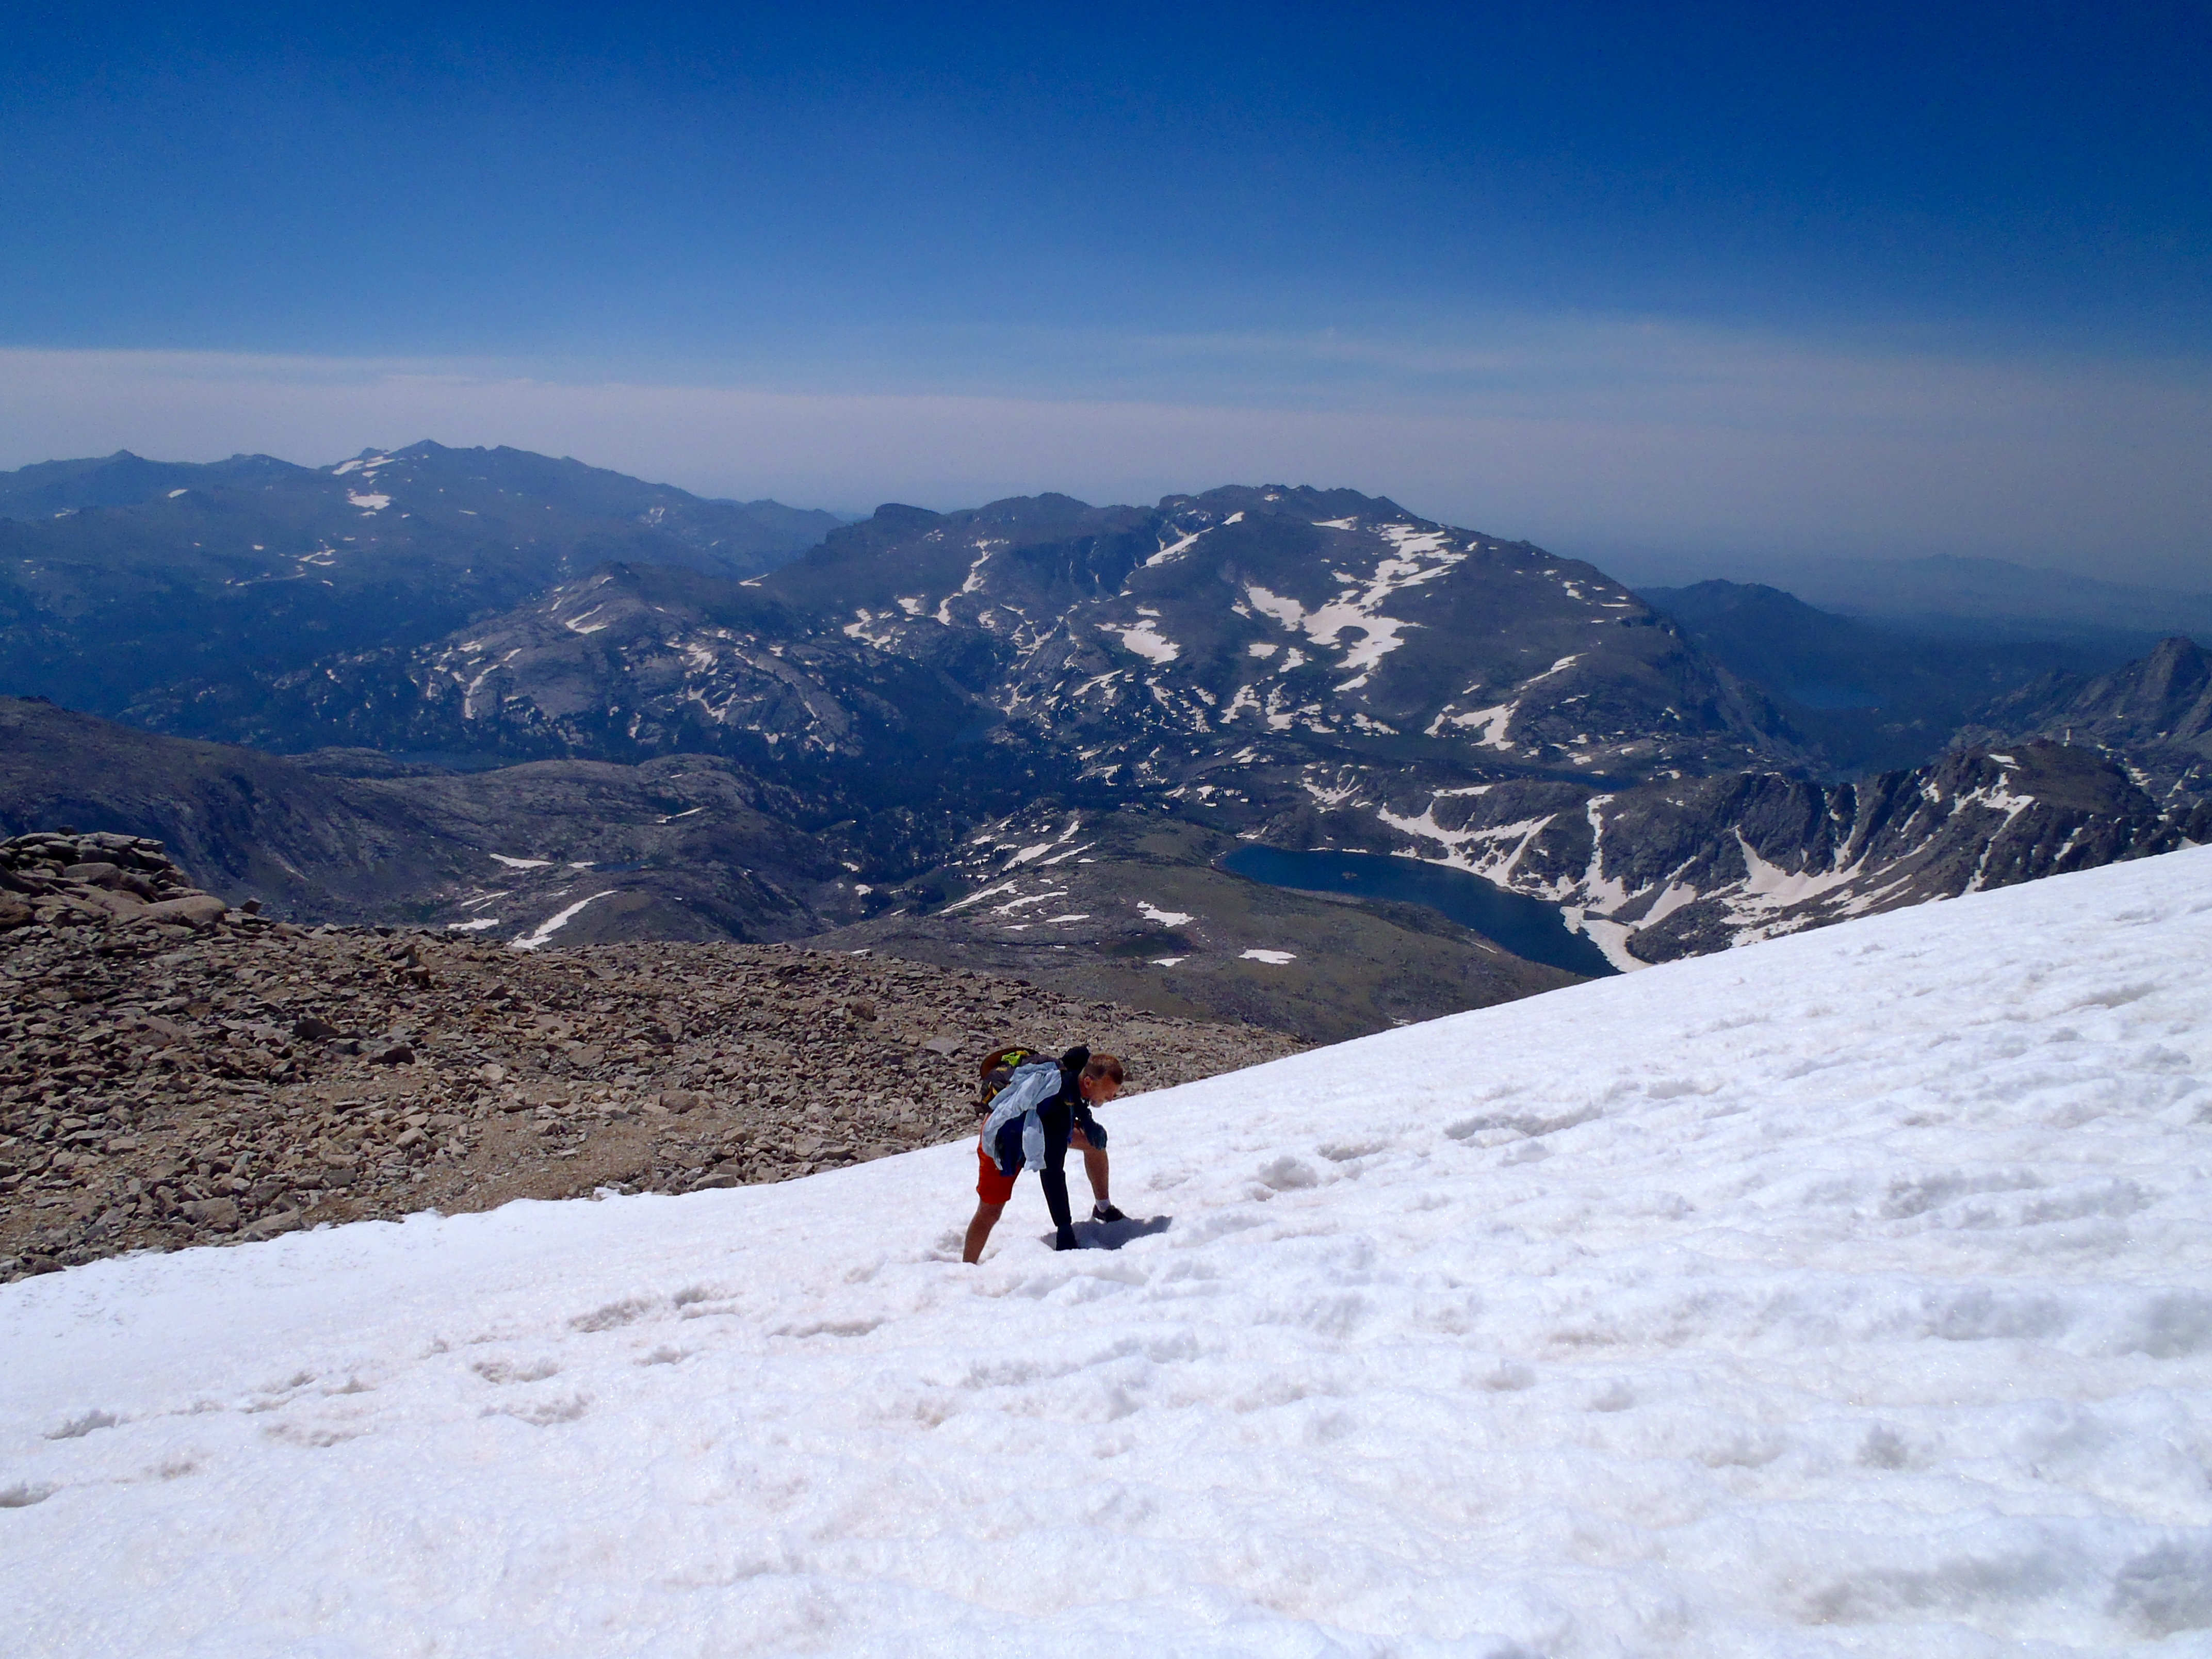 Jerry, hiking up one of the snow fields on Wind River Peak's northeast ridge.